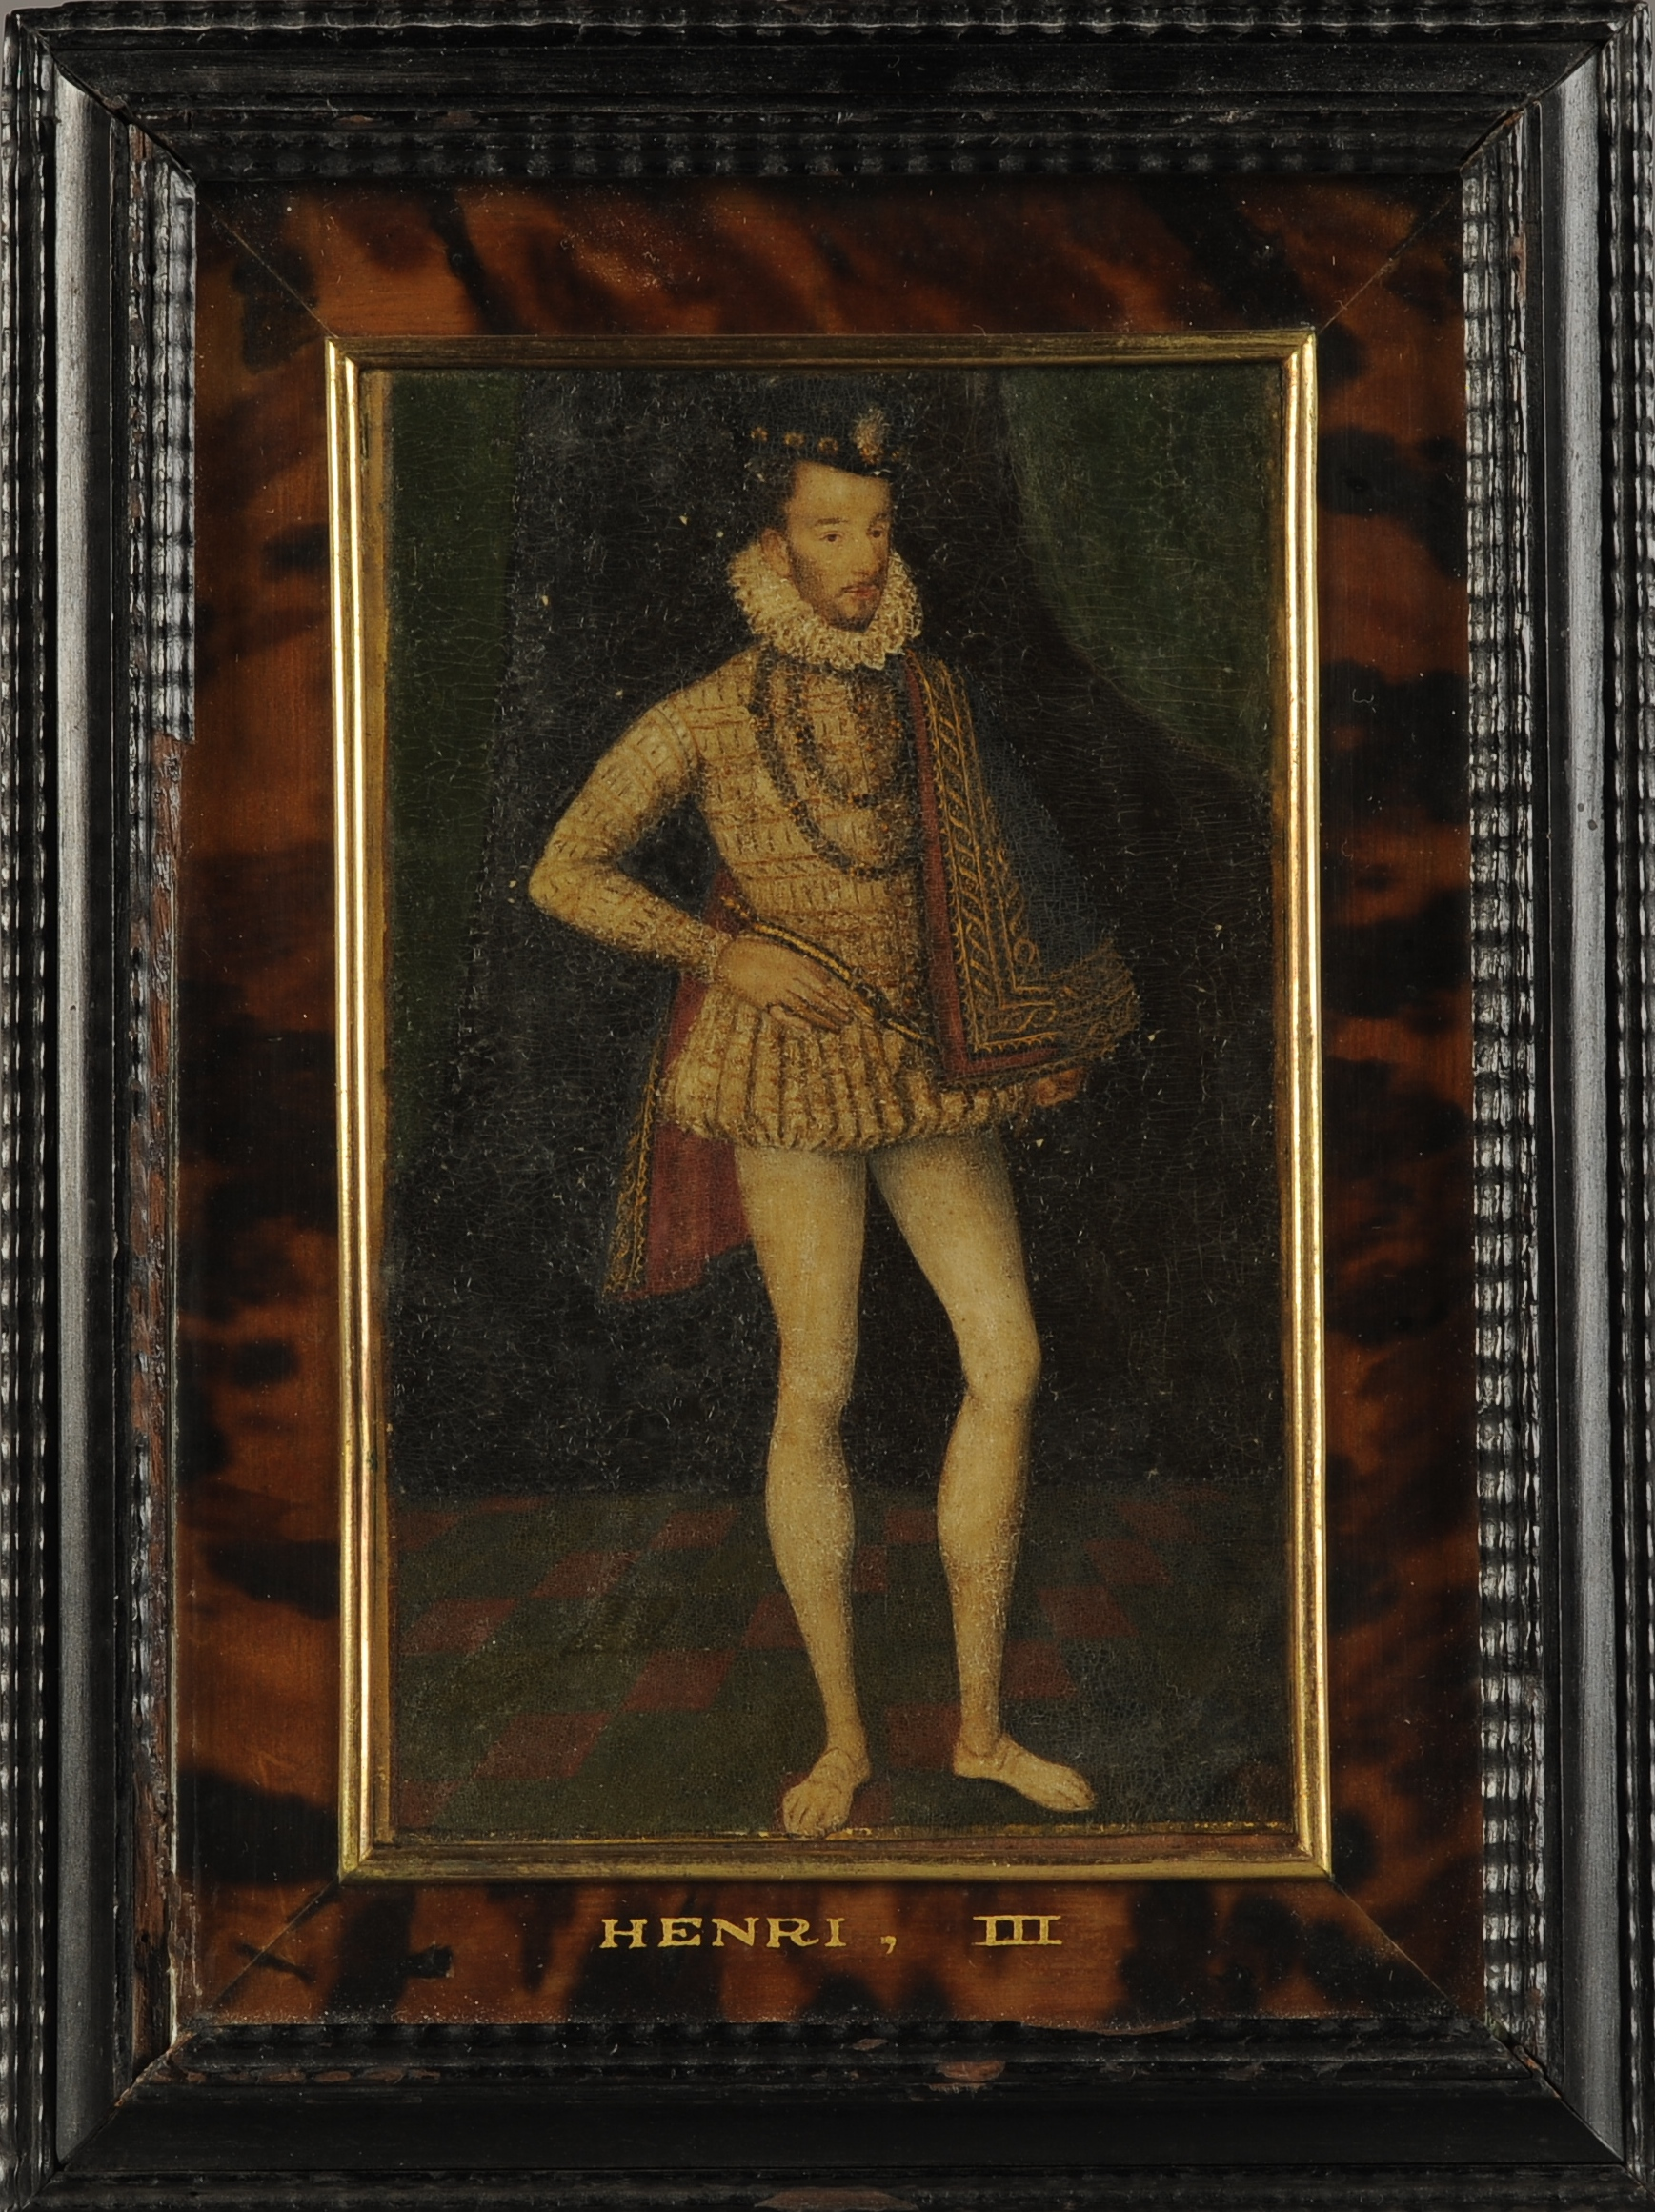 Lot 41 - STUDIO OF FRANCOIS CLOUET (1522-1572) circa 1570, portrait of Henri III, standing full length, in an